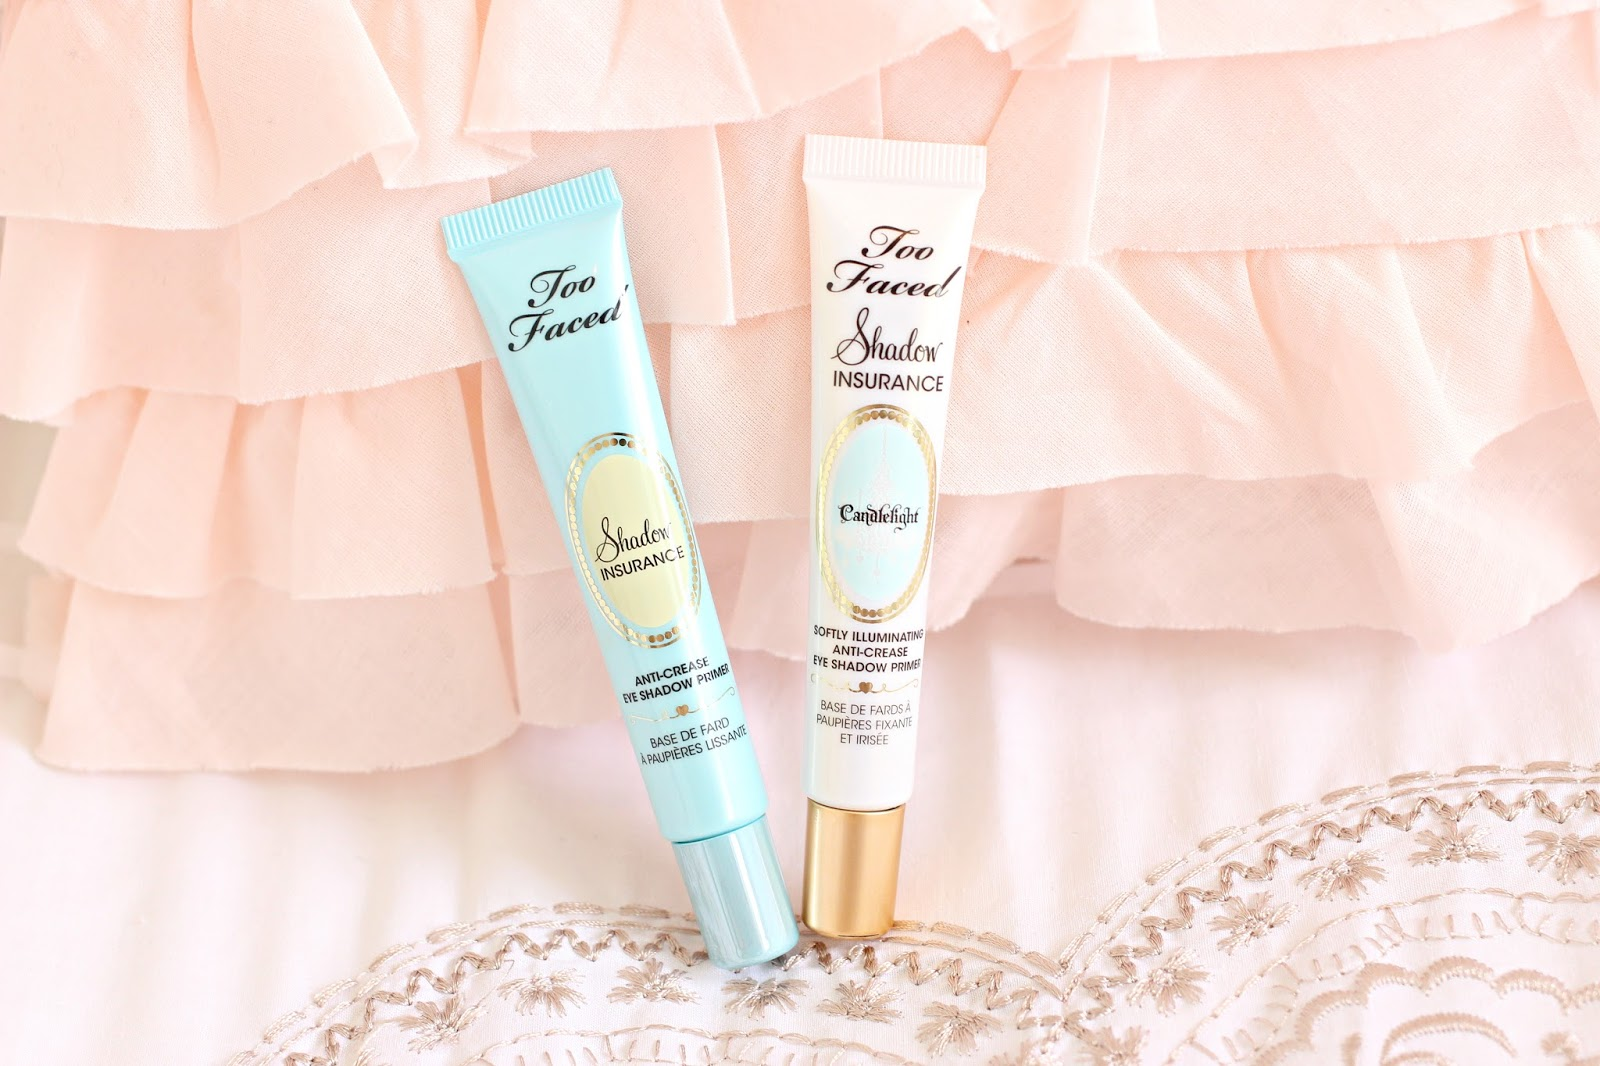 Shadow Insurance Softly Illuminating Eyeshadow Primer - Candlelight by Too Faced #14